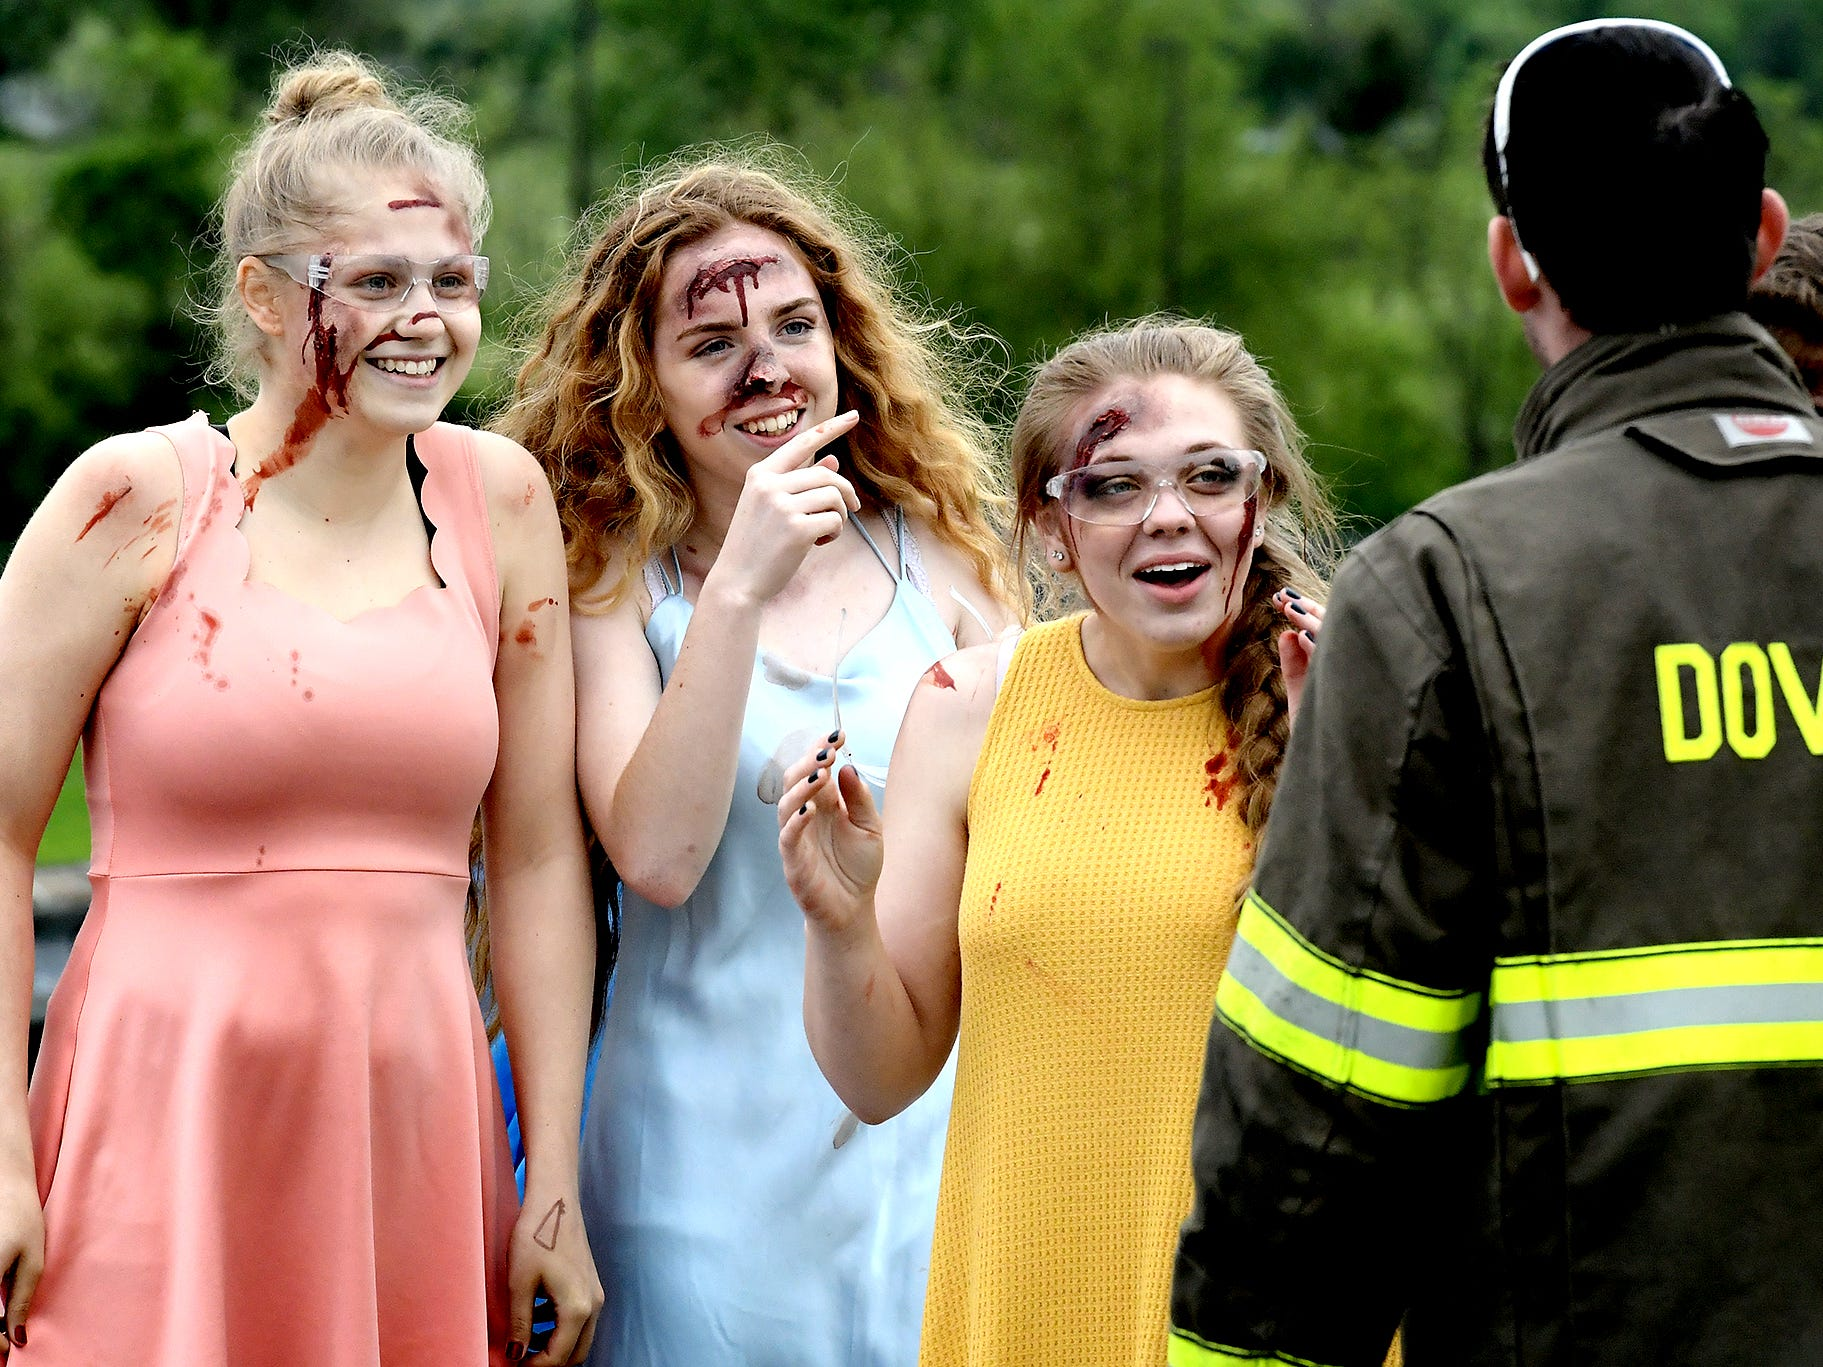 Dover High School mock accident victims, from left, senior Abby Diehl, senior Chayce Hoffman and junior Victoria Brennan are briefed prior to the staging of the accident at the Dover Area High School Thursday, May 9, 2019. A fellow student administered makeup to the acting victims. Local fire, ambulance and police volunteered for the event which reminds high school upperclassmen to be safe during prom season. Dover's prom in Saturday, May 11. Bill Kalina photo